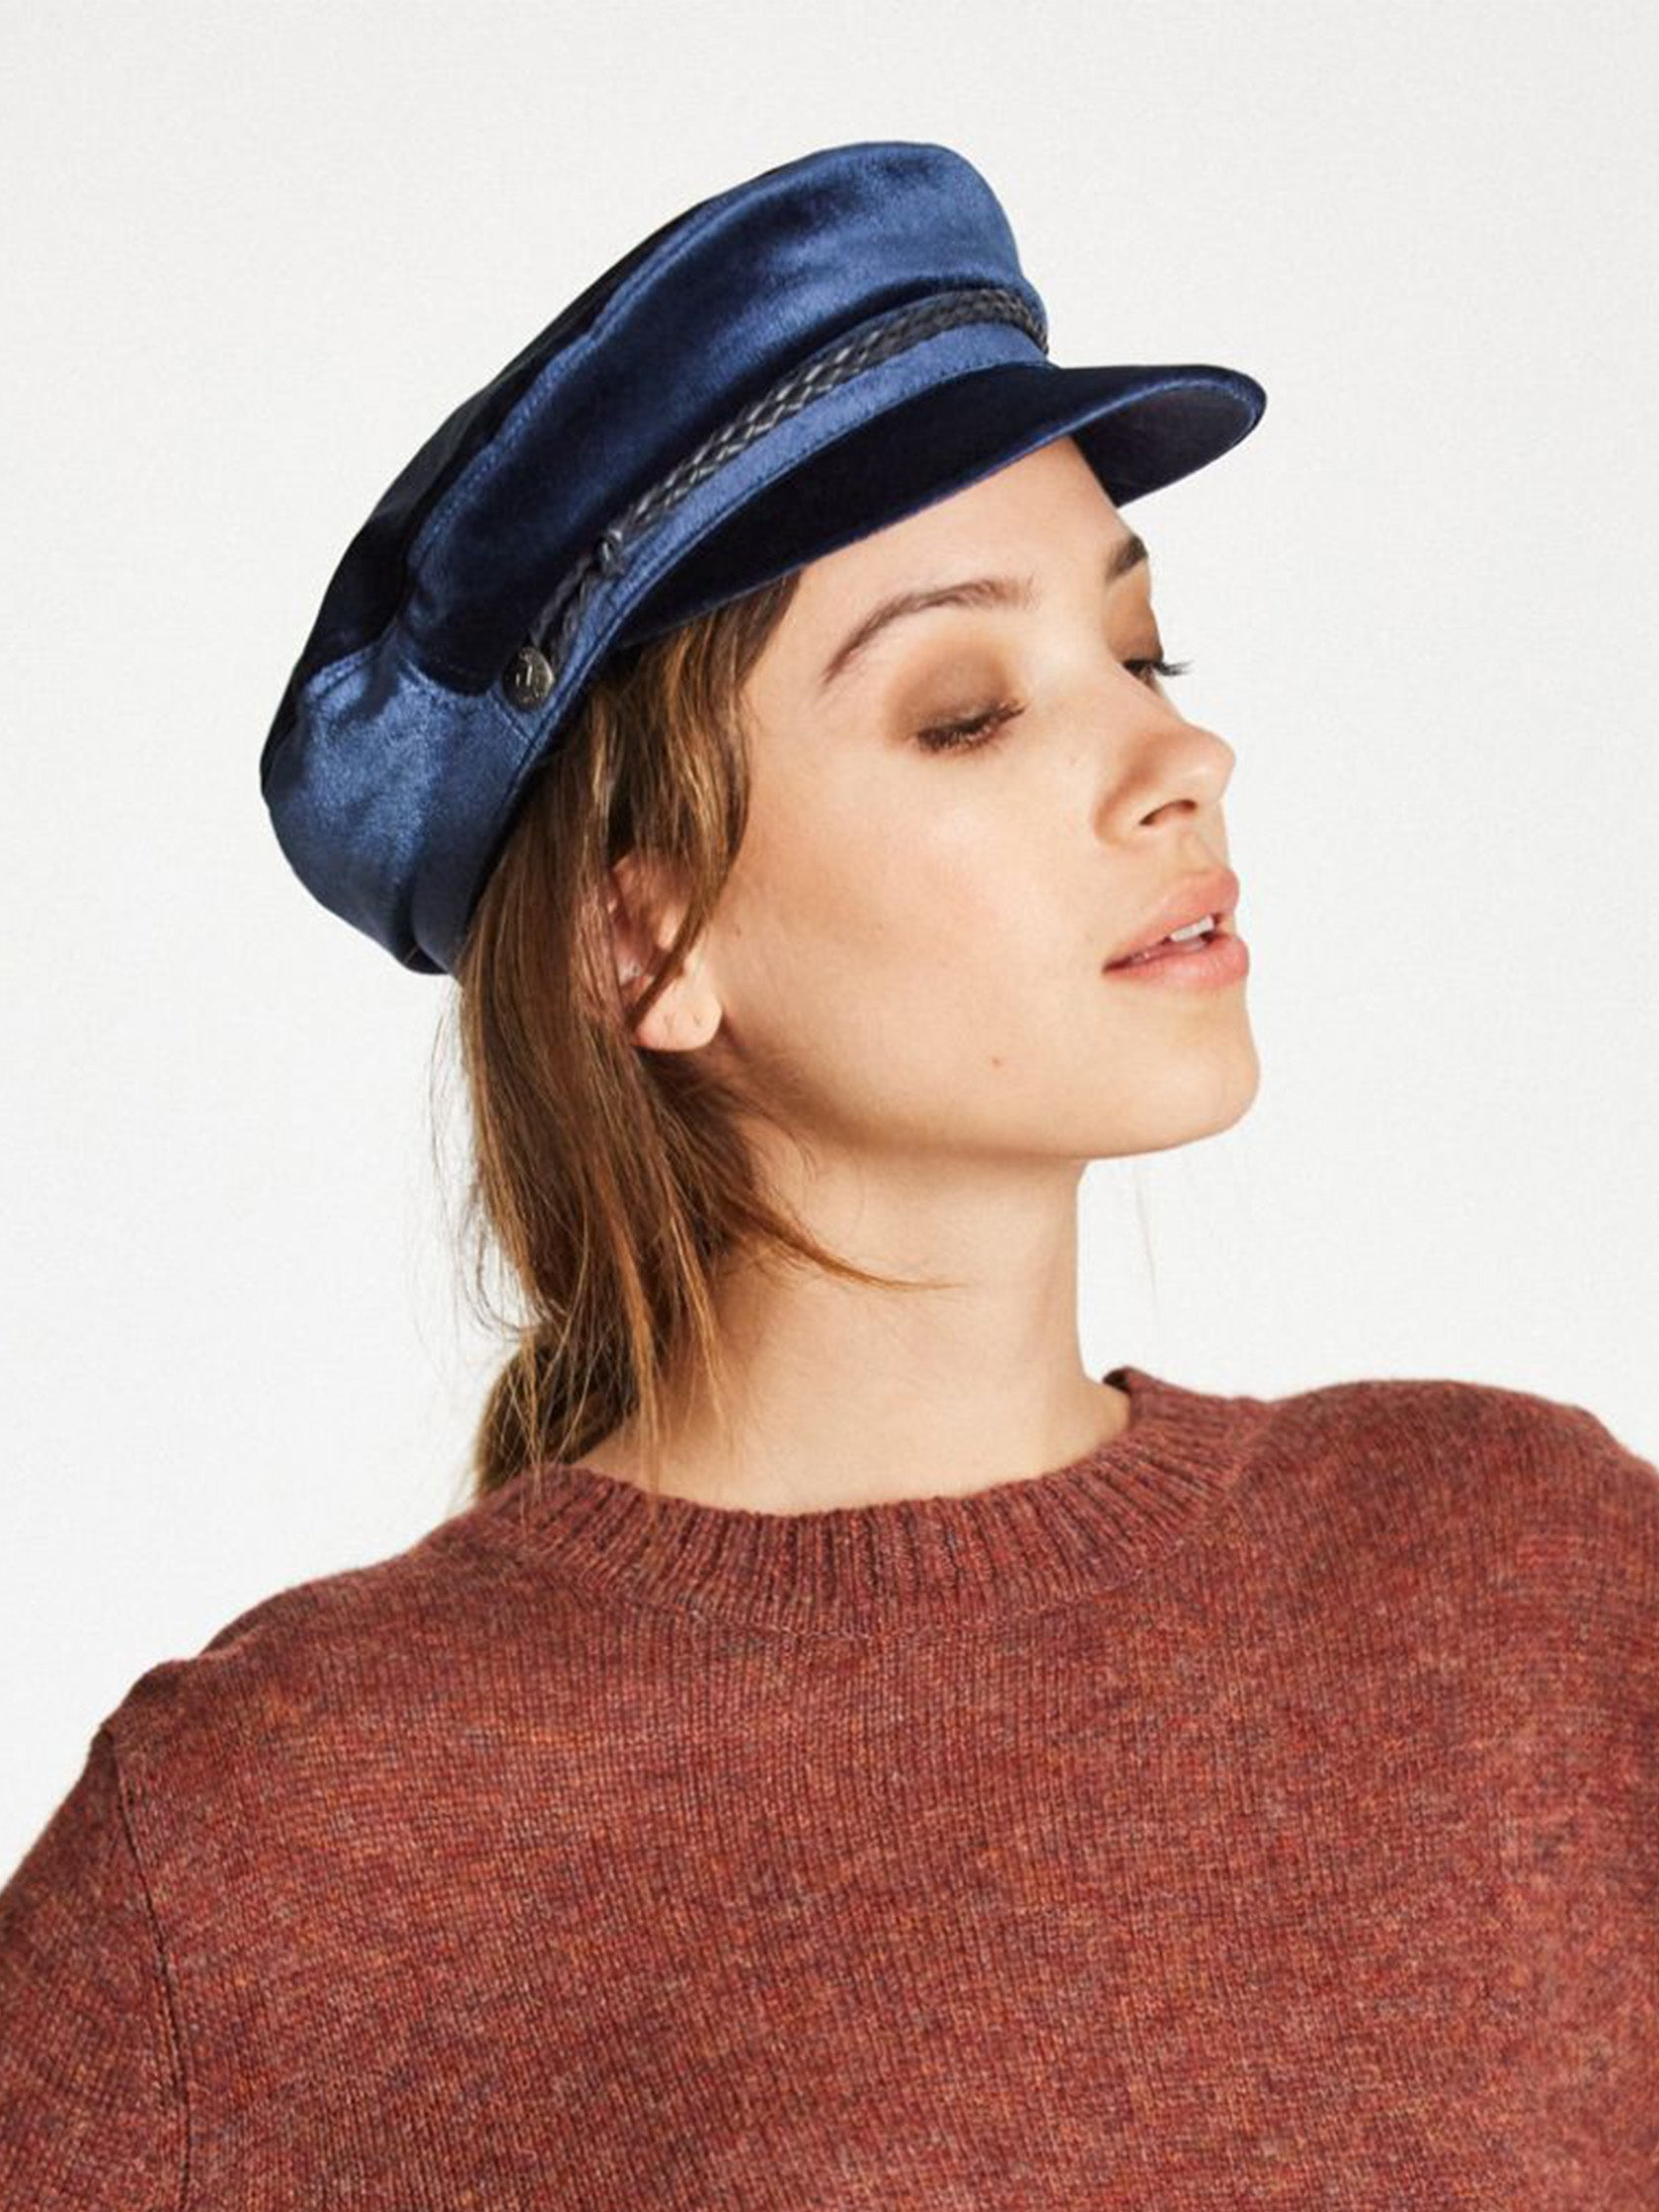 Women outfit in a hat rental from Brixton called Ashland Cap